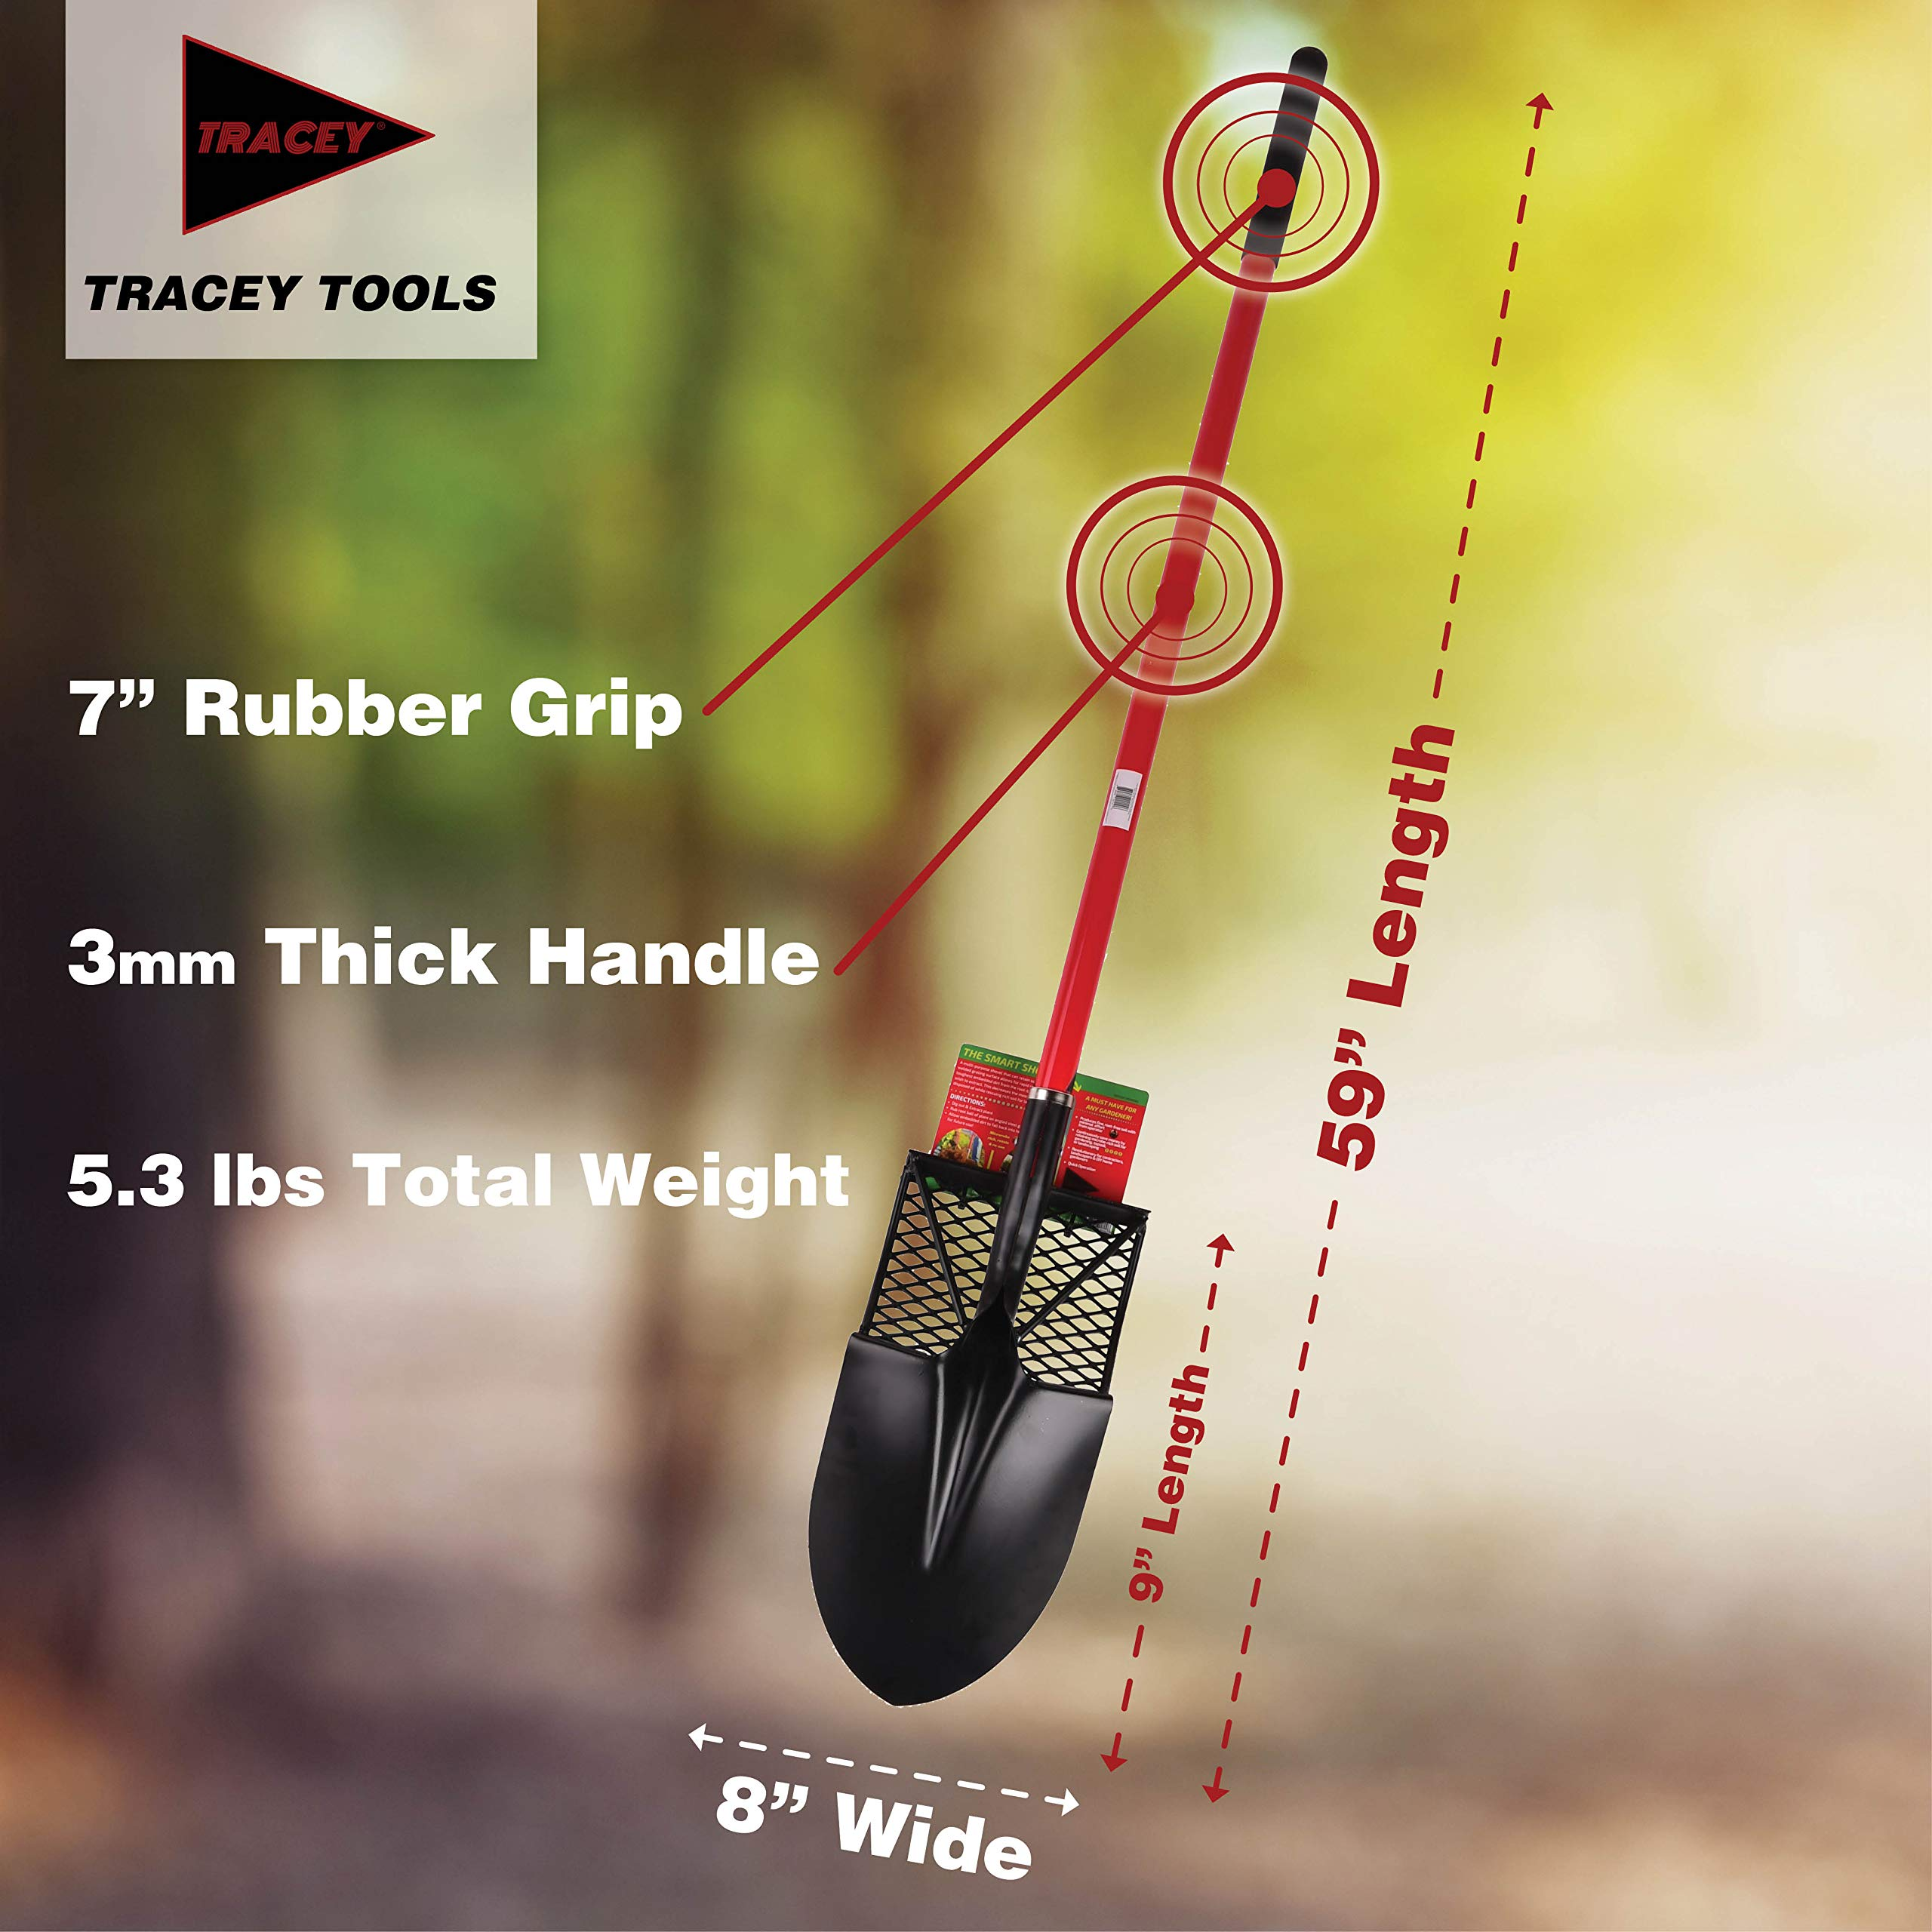 Tracey Garden Shovel with Long Fiberglass Handle for Digging, Transplanting and Gardening Round Point Spade Smart Shovel Design Tools